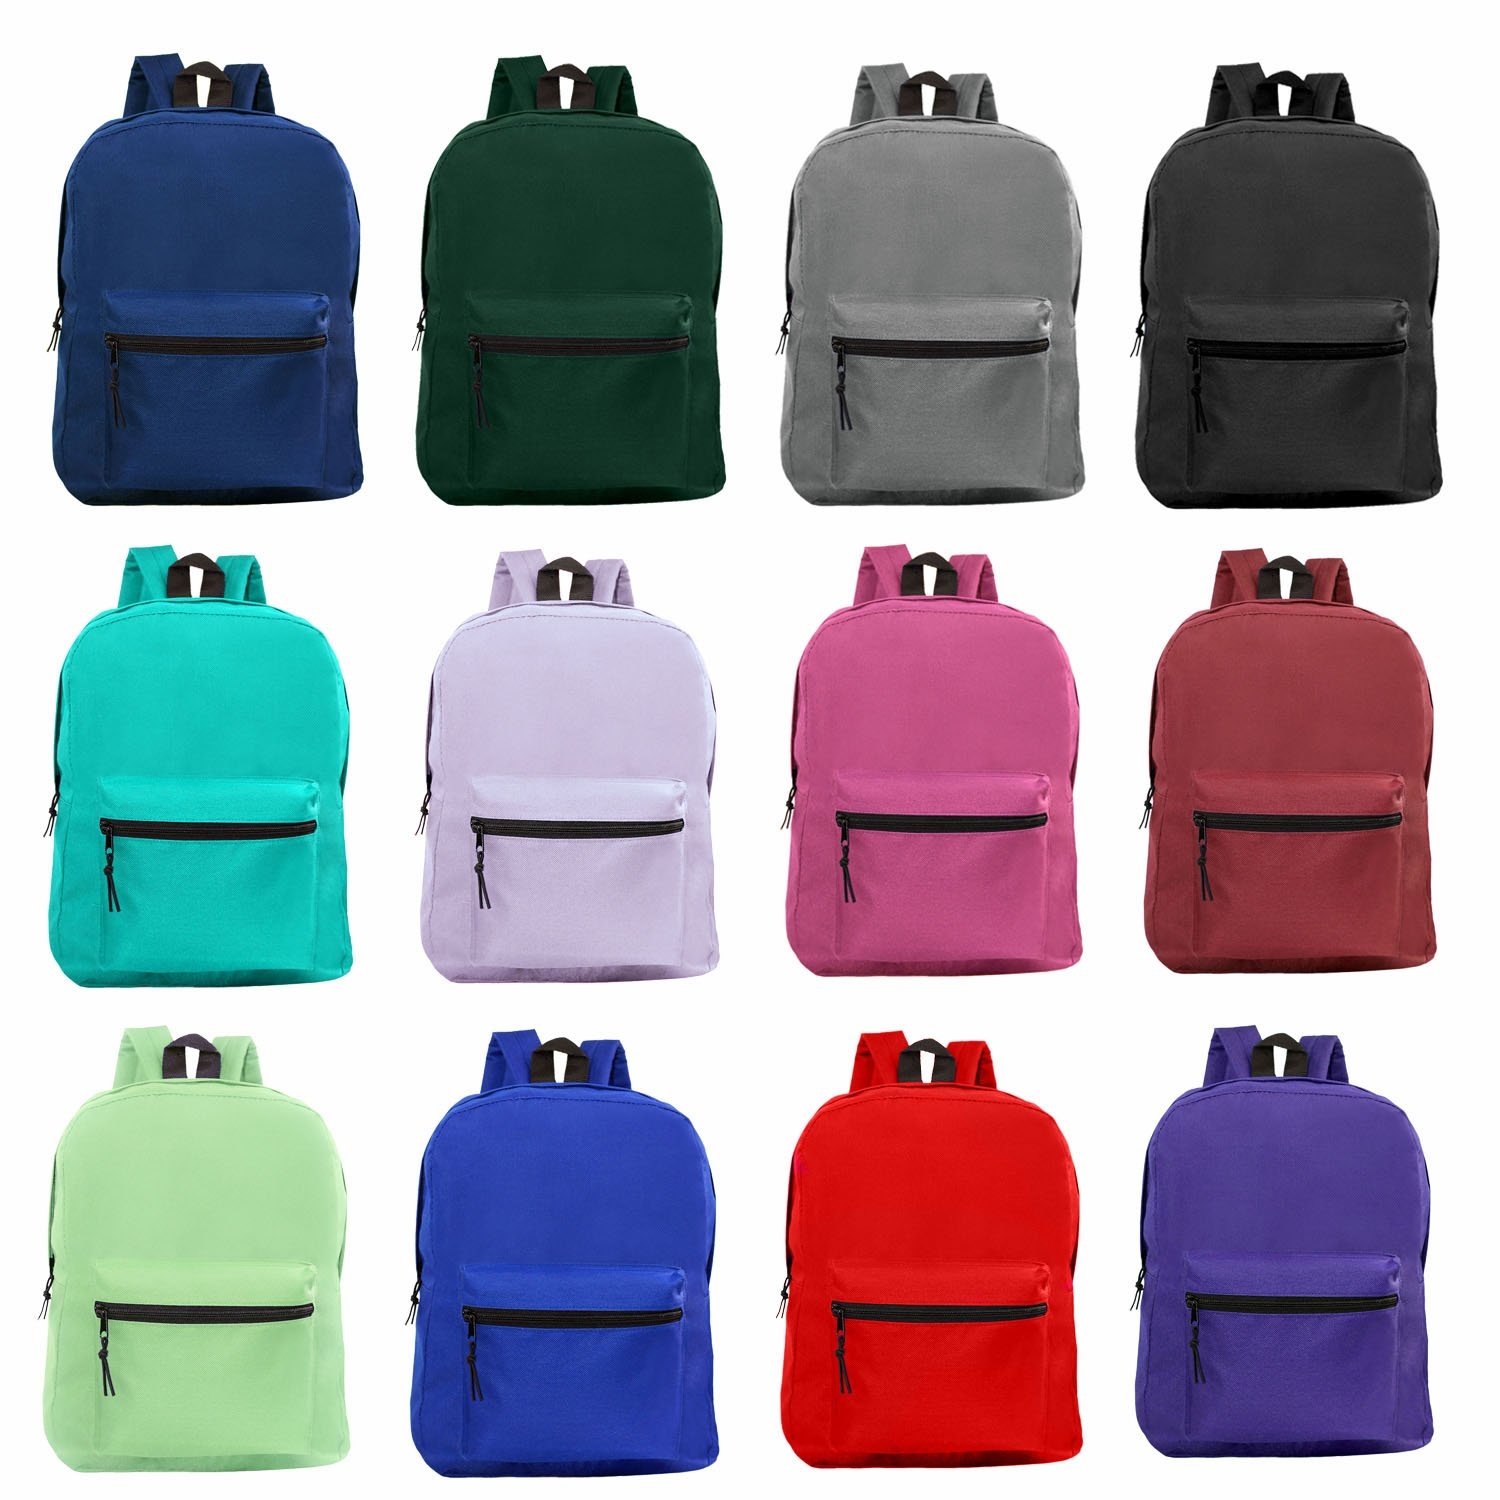 Wholesale 15'' Backpacks for Kids - Bulk Case of 24 Bookbags - 12 Assorted Colors